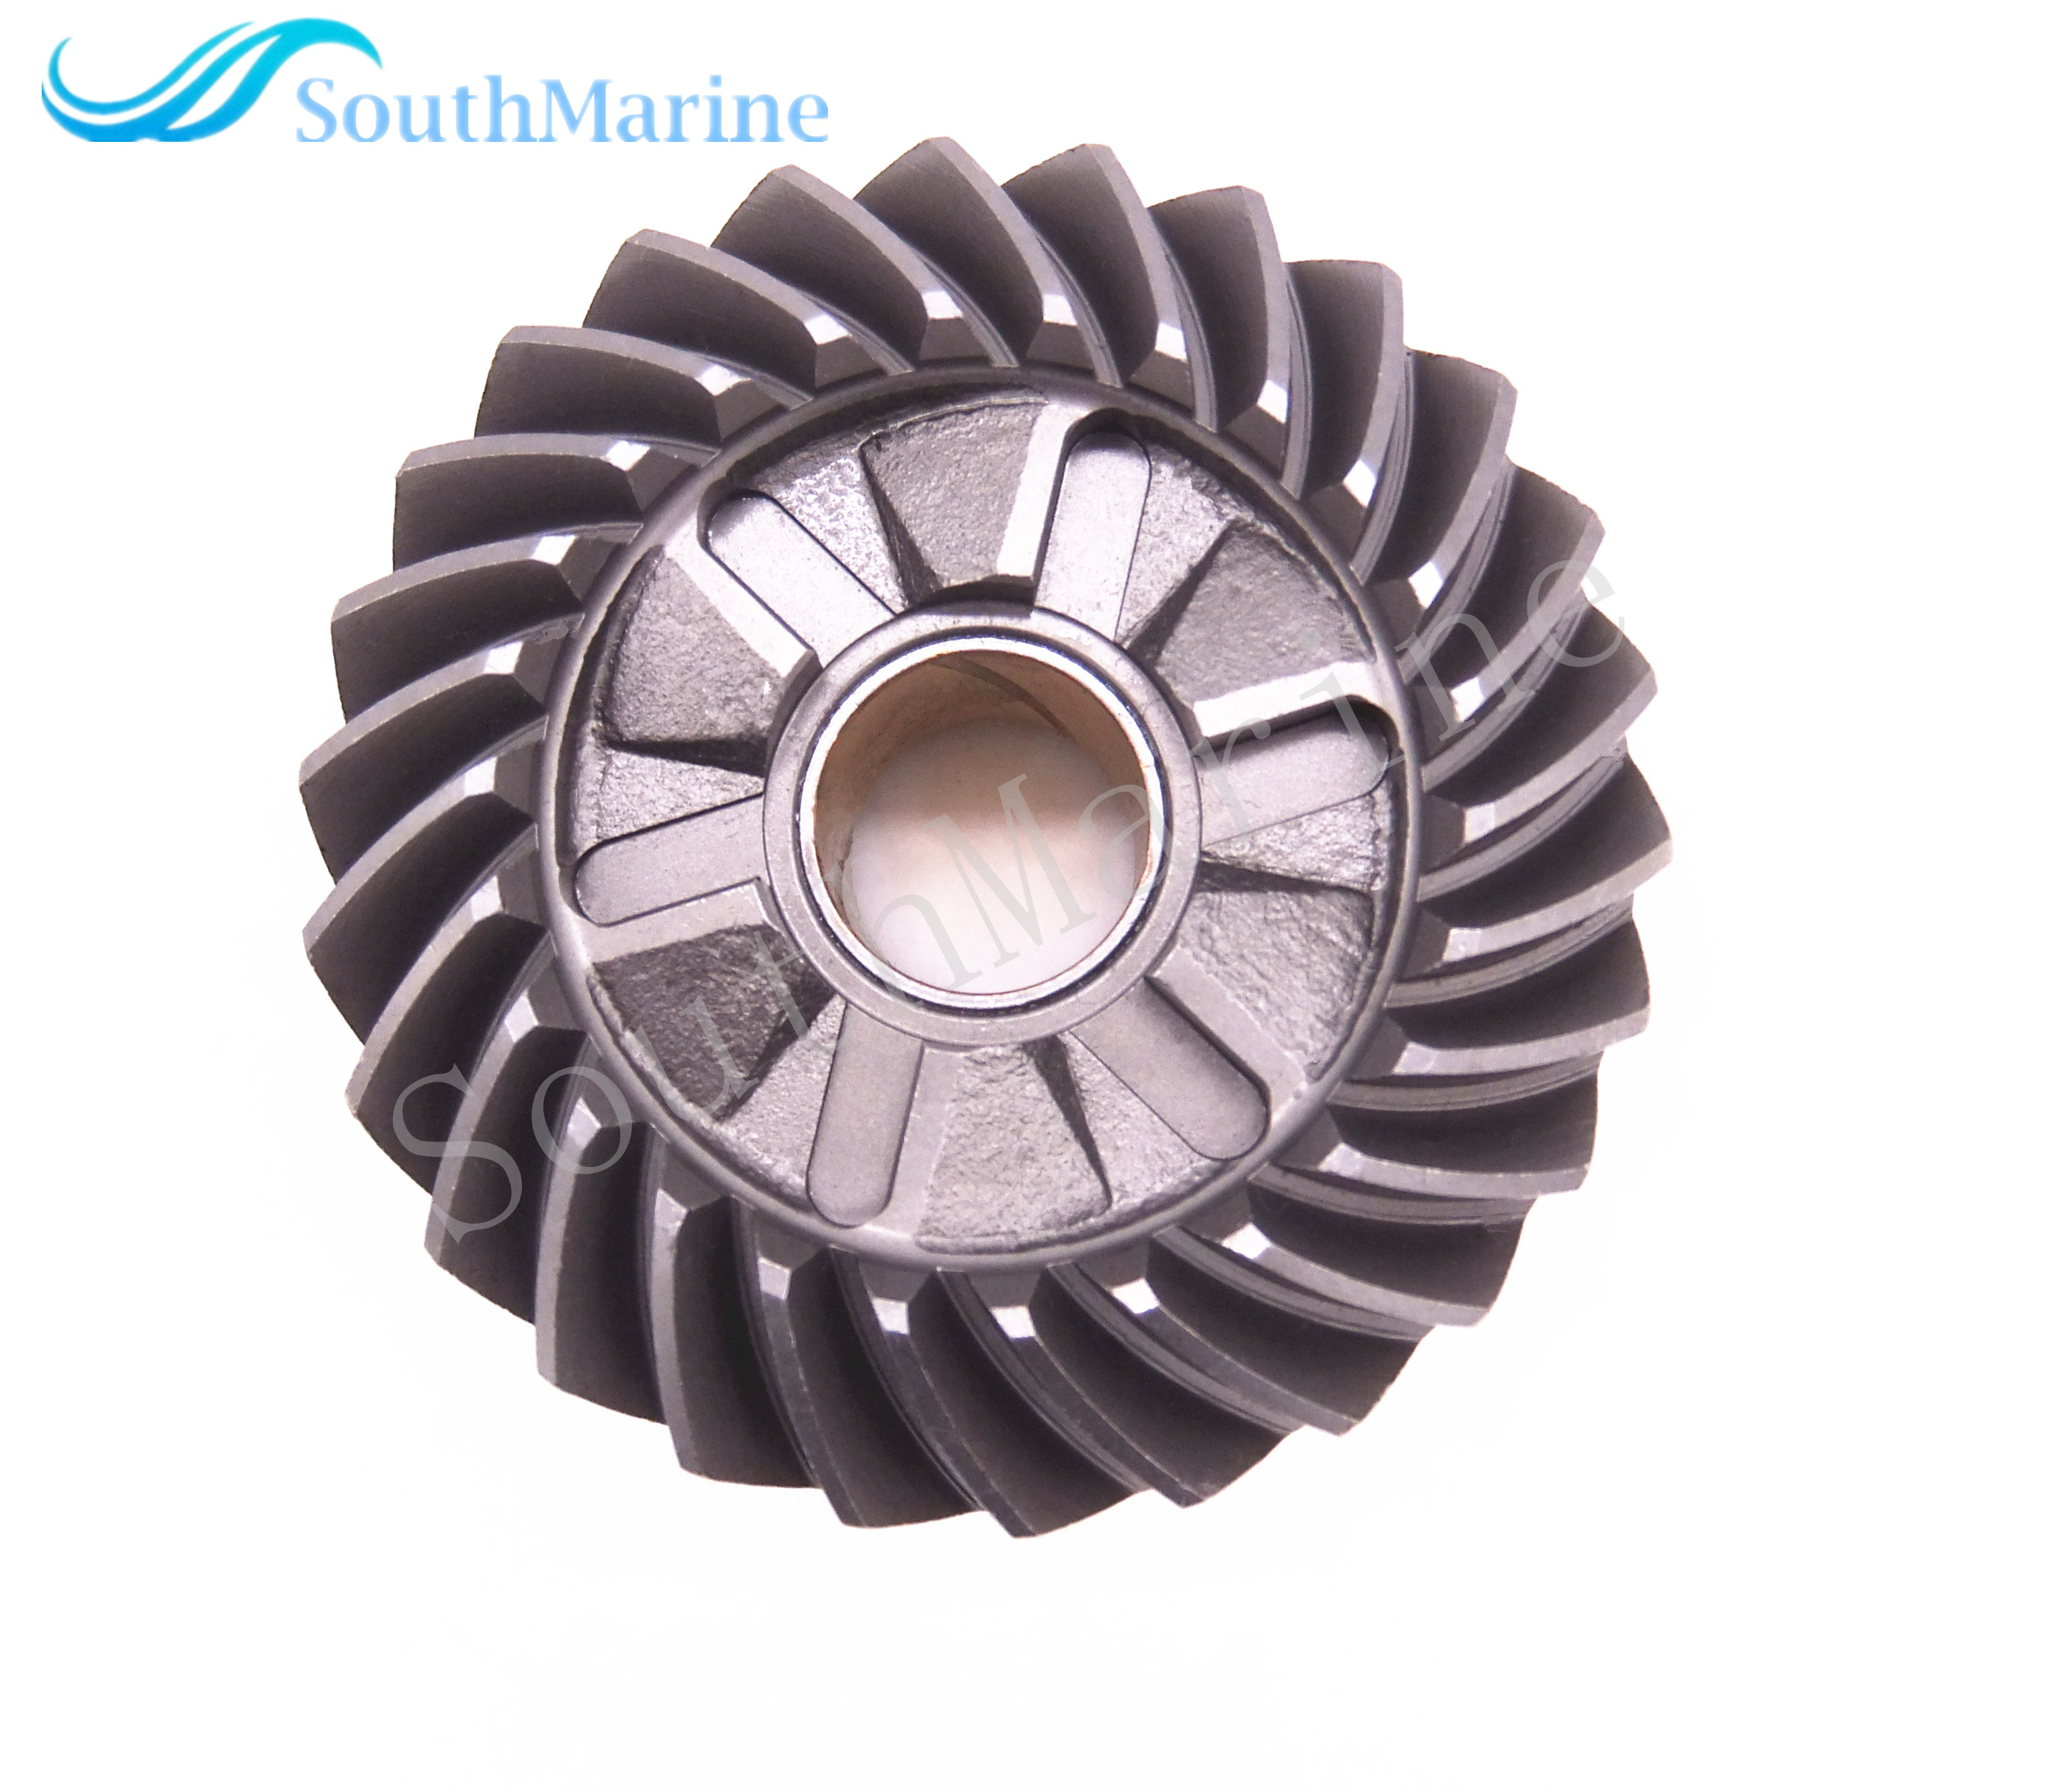 Automobiles & Motorcycles Obedient T85-04000100 Forward Gear For Parsun Hdx Outboard Engine 2-stroke T75 T85 T90 Boat Motor